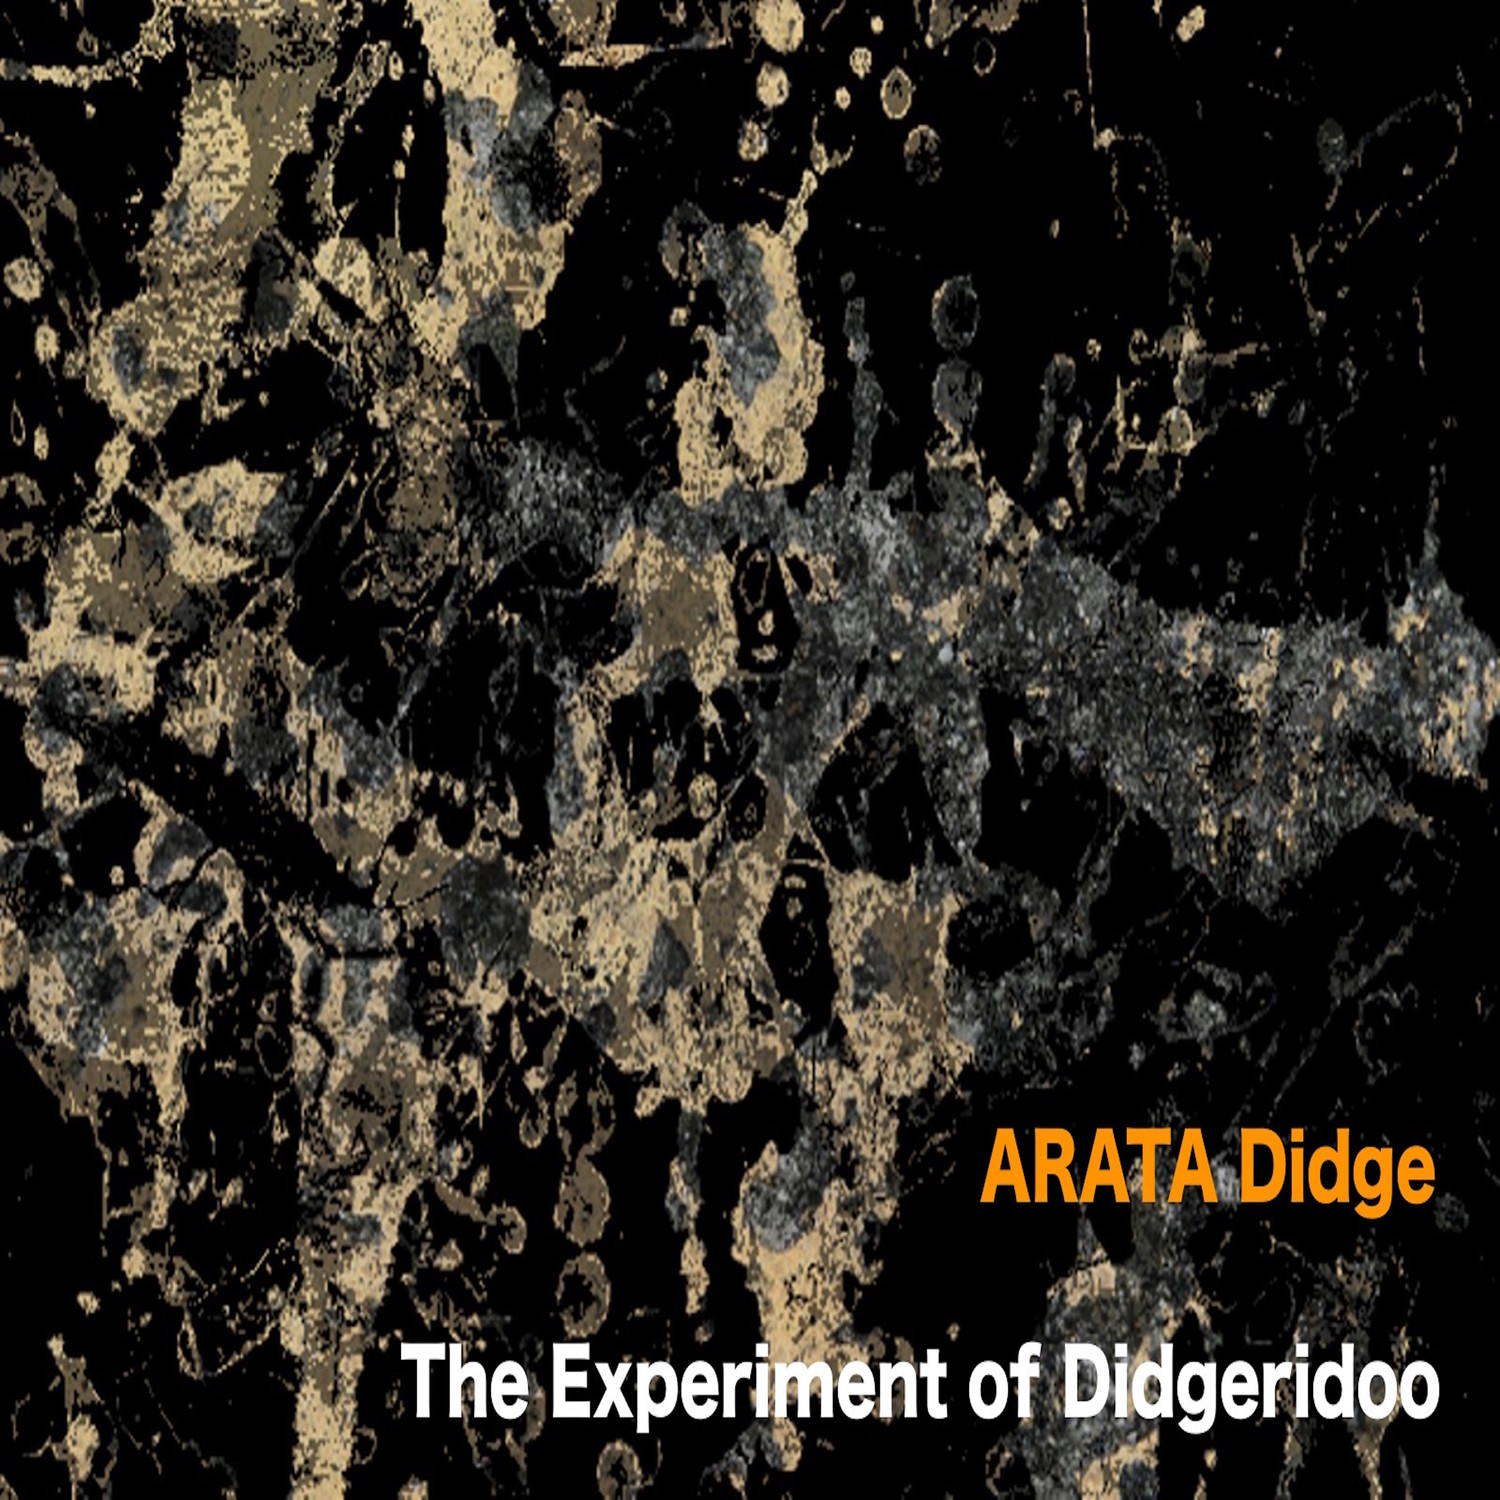 ARATA Didge - The Experiment of Didgeridoo